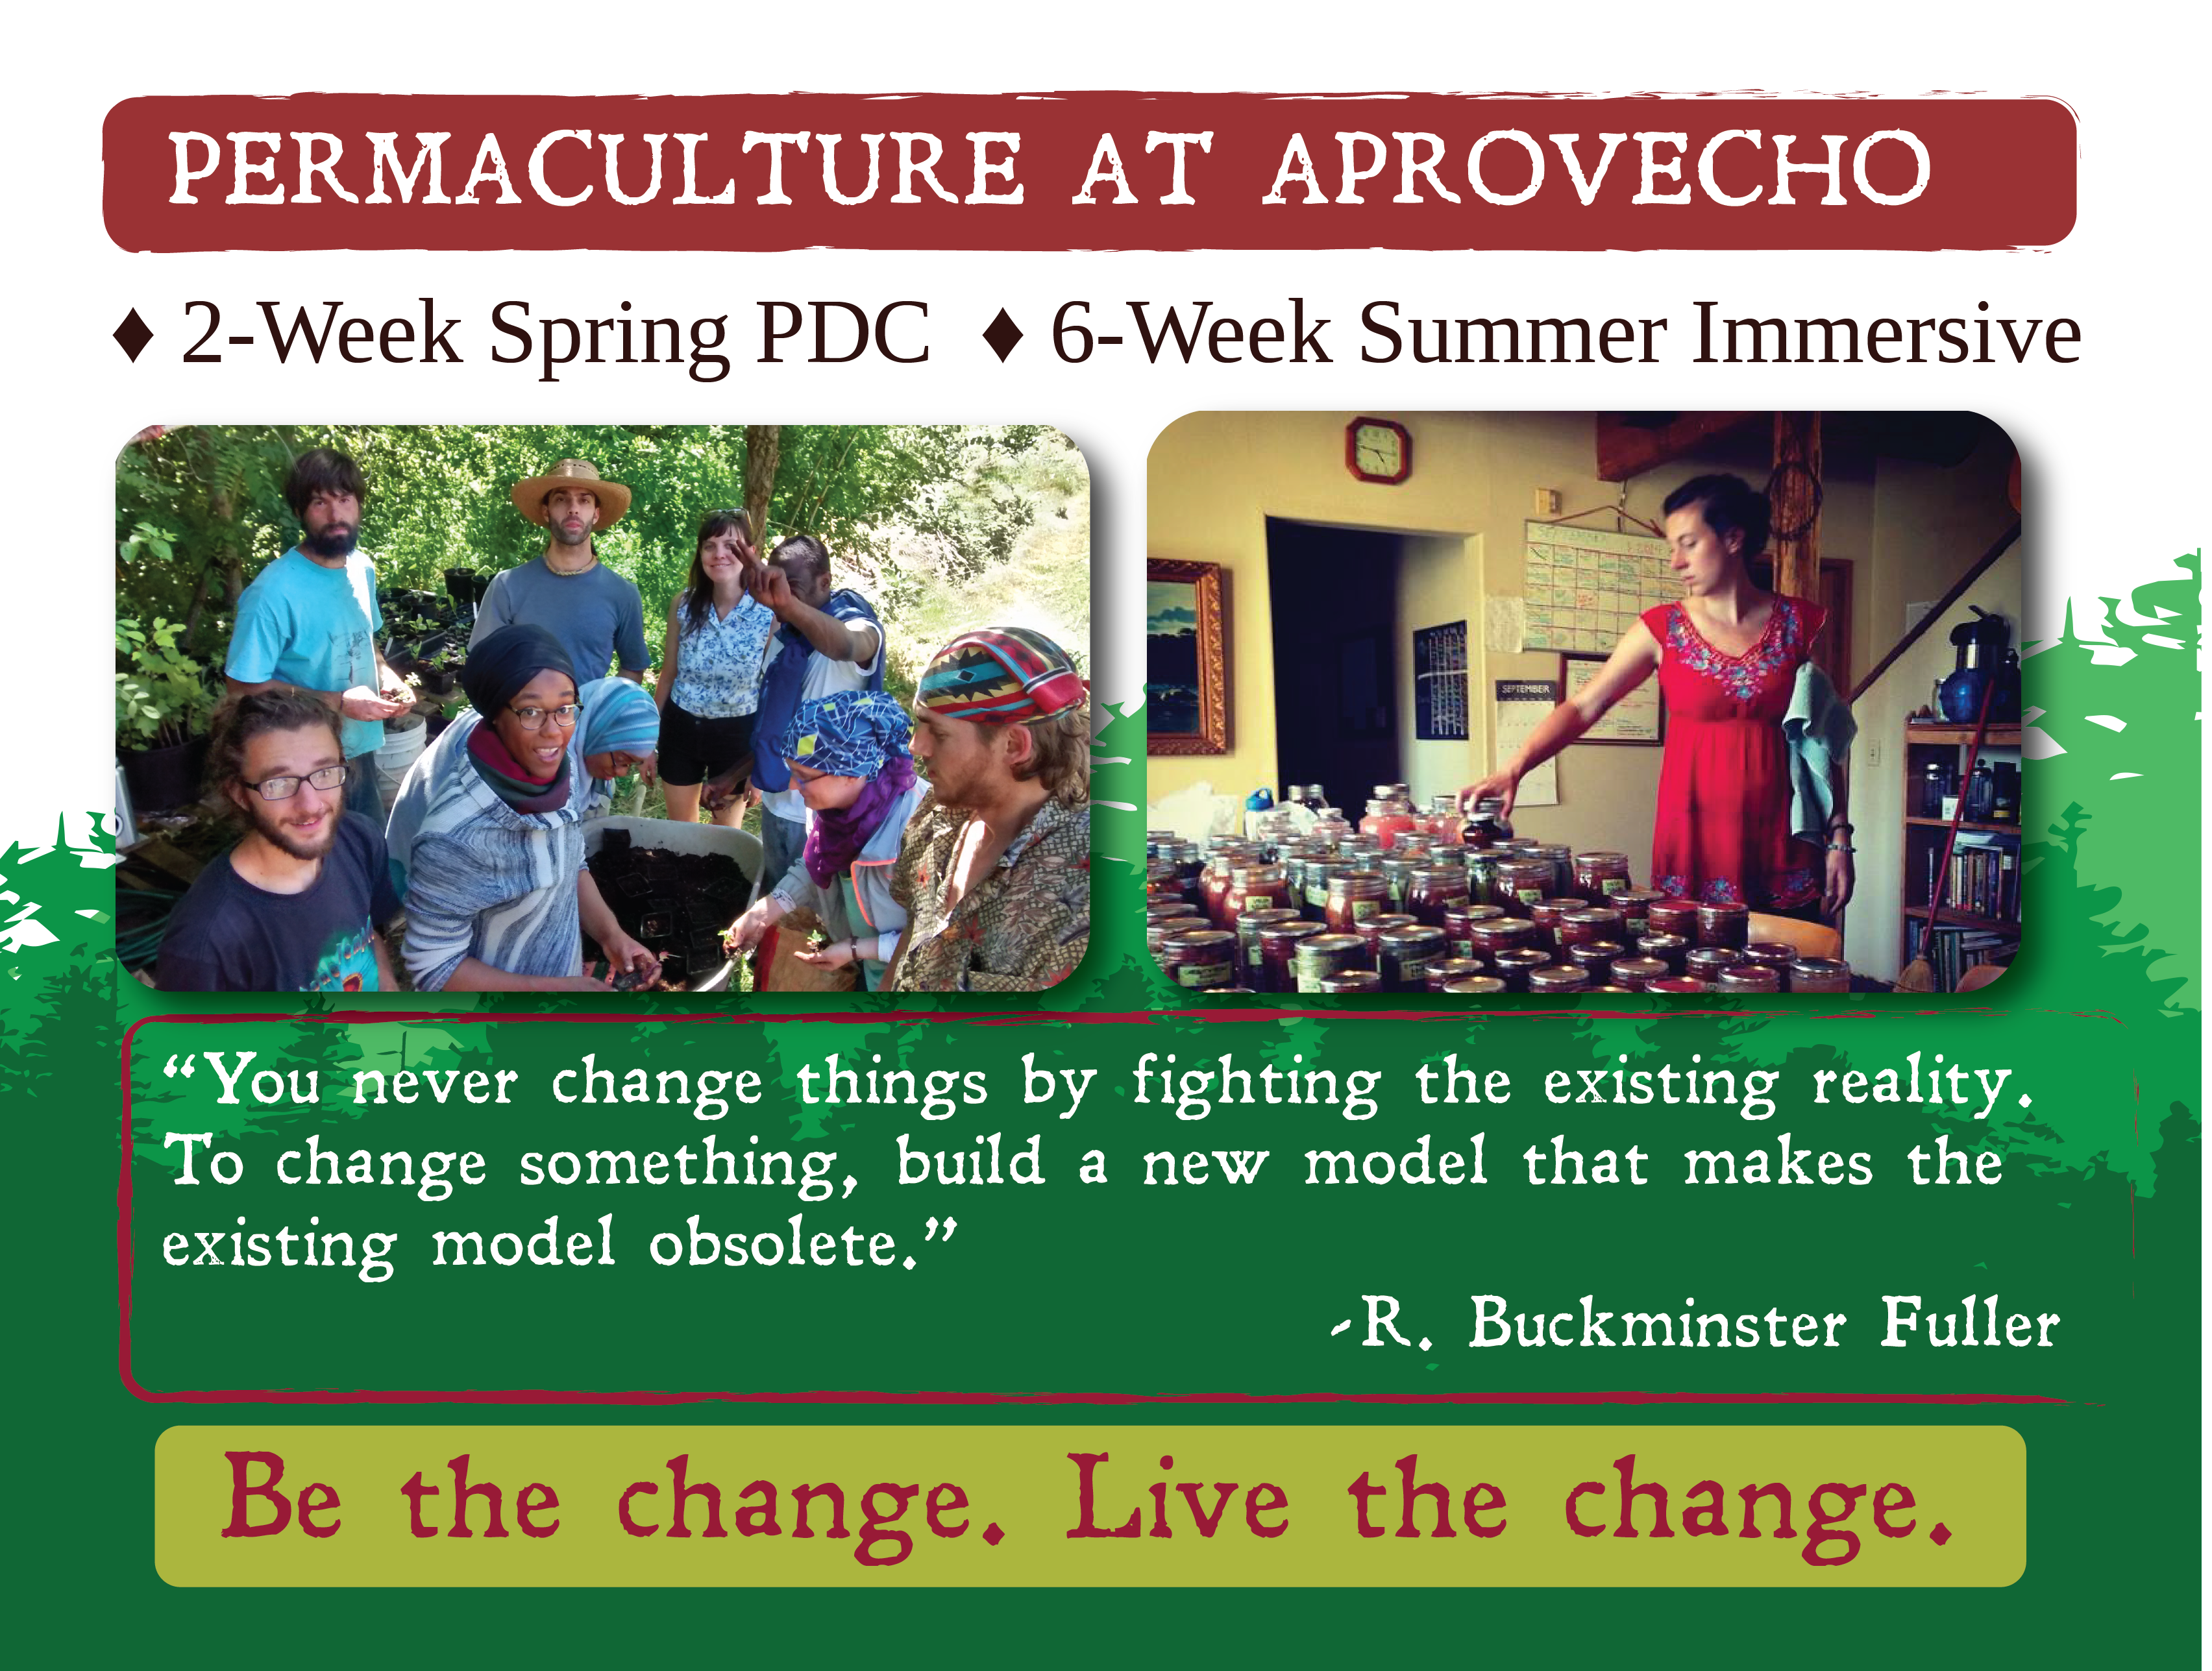 Learn Permaculture at Aprovecho! Begin your journey toward a permaculture life based on holistic system design using sustainable methods of farming, building, and living.